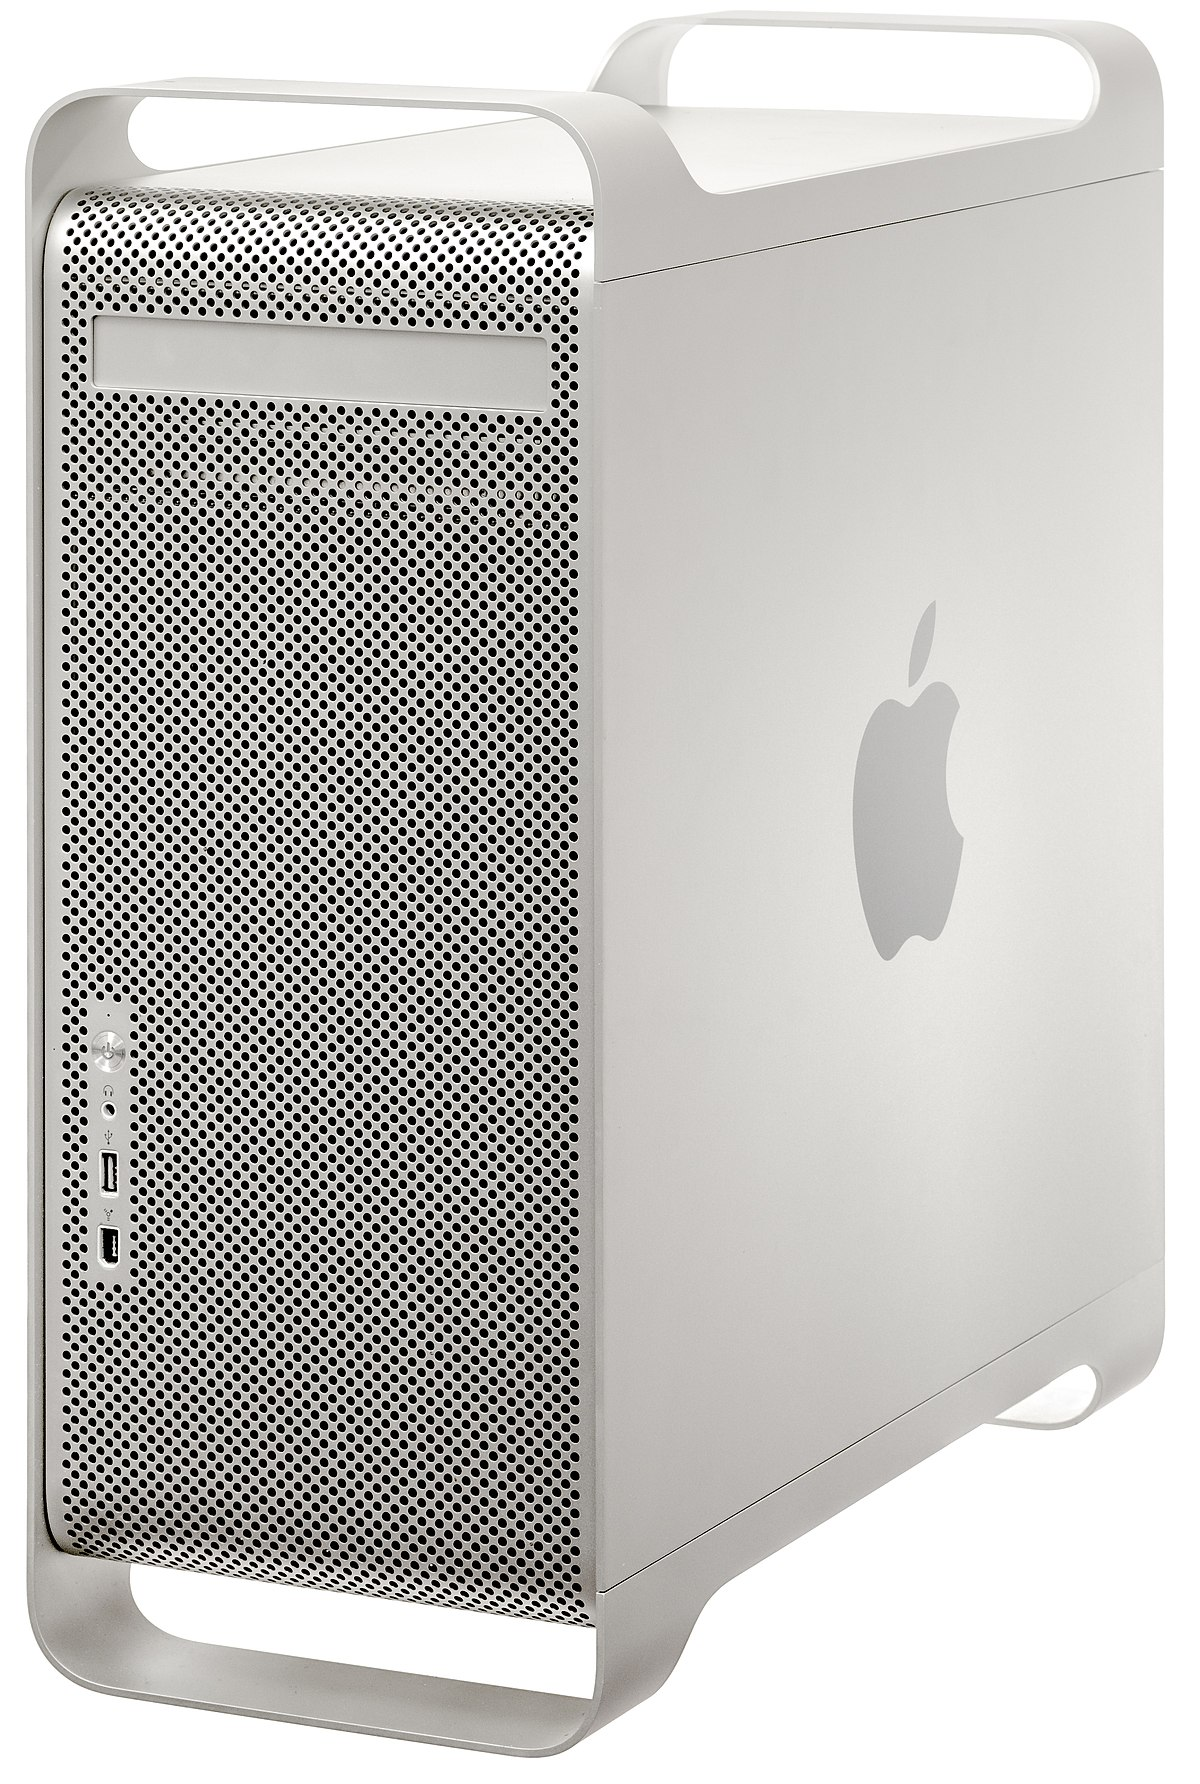 Power Mac G5 - Wikipedia